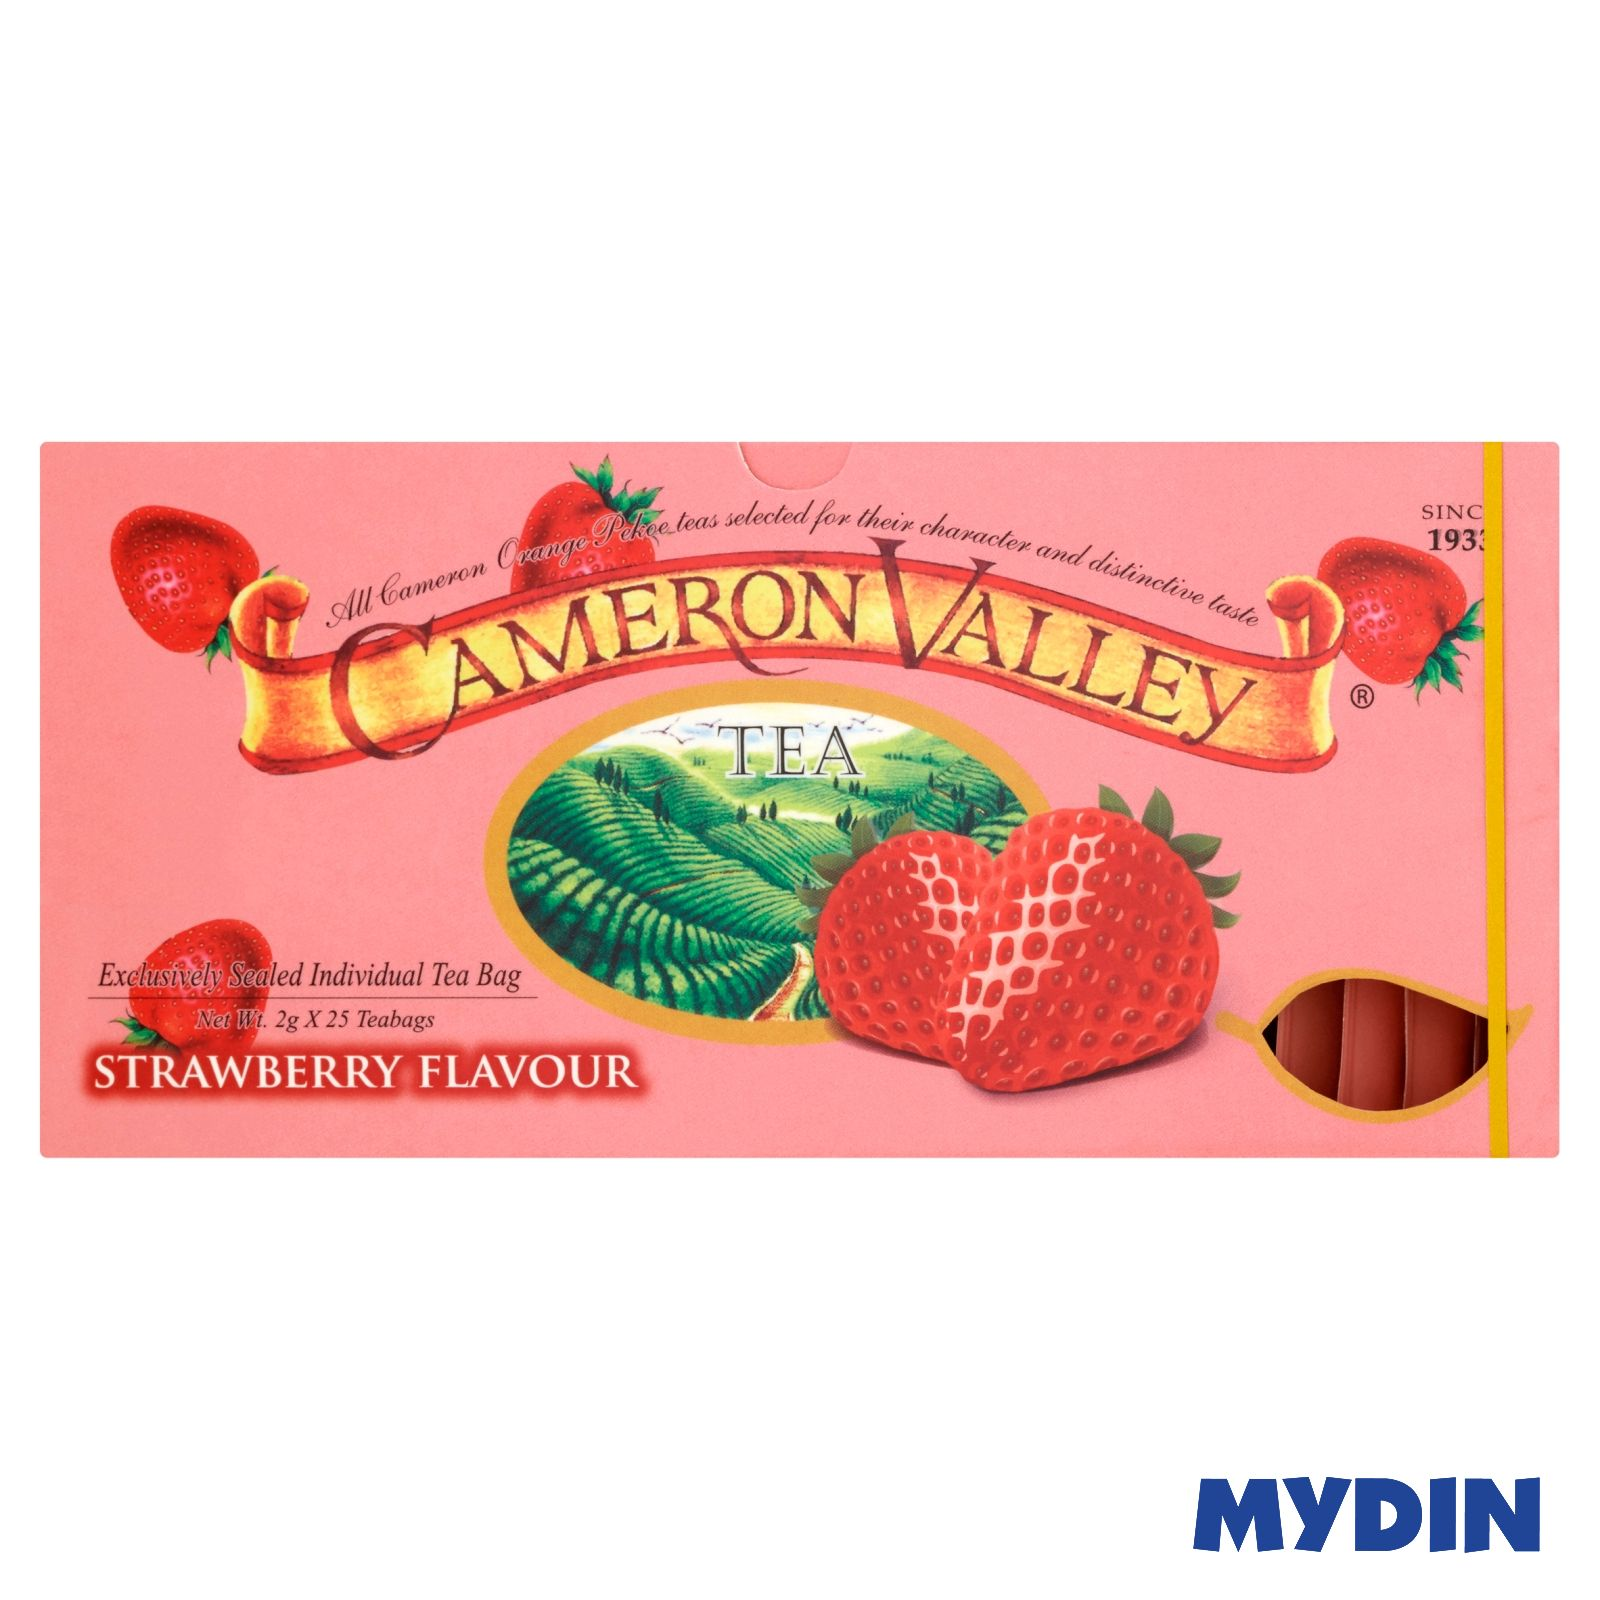 Cameron Valley Tea (25 x 2g) Strawberry